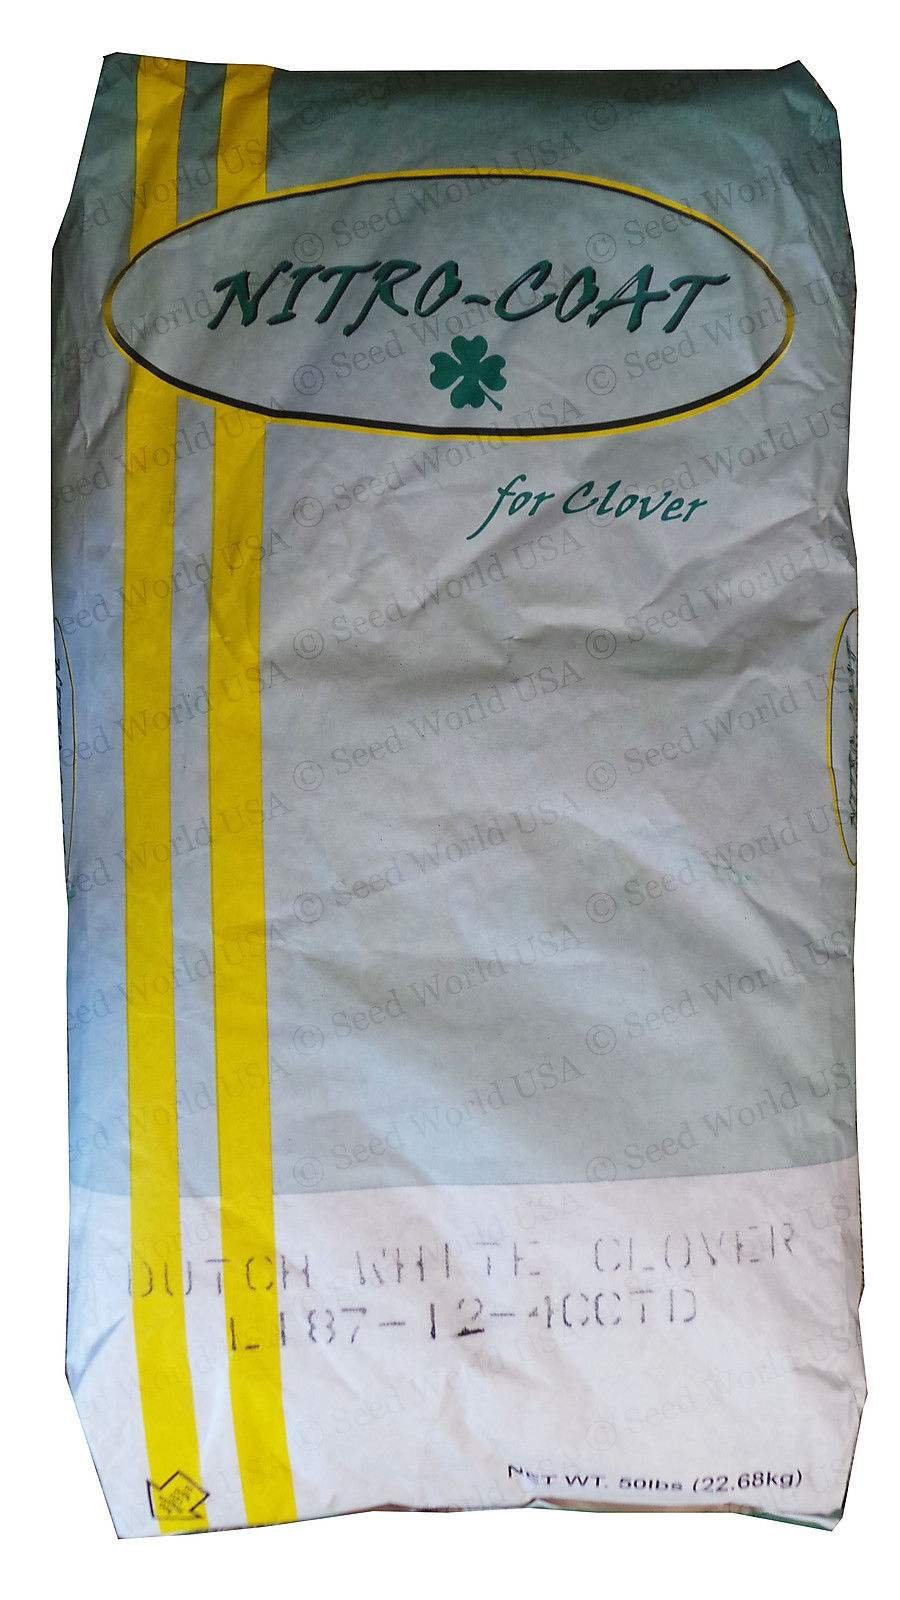 SeedRanch Nitro-Coated and Inoculated Seedranch White Dutch Clover Seeds - 50 Pounds